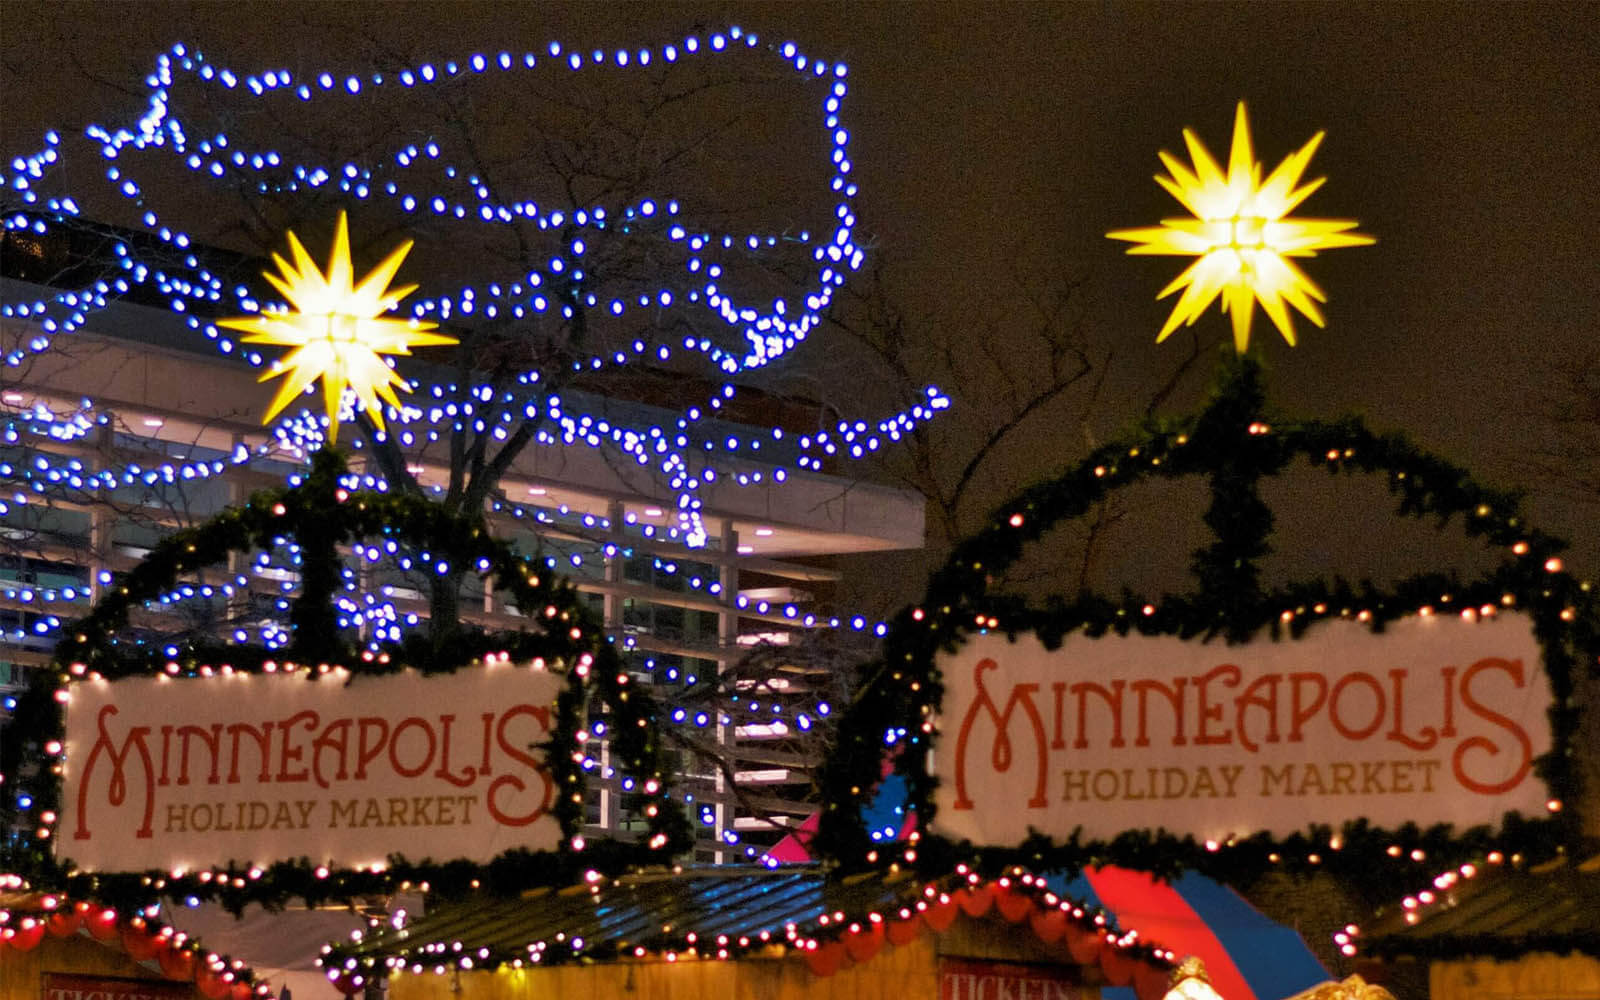 donation of more than 50 herrnhut christmas stars to the holiday market in minneapolis